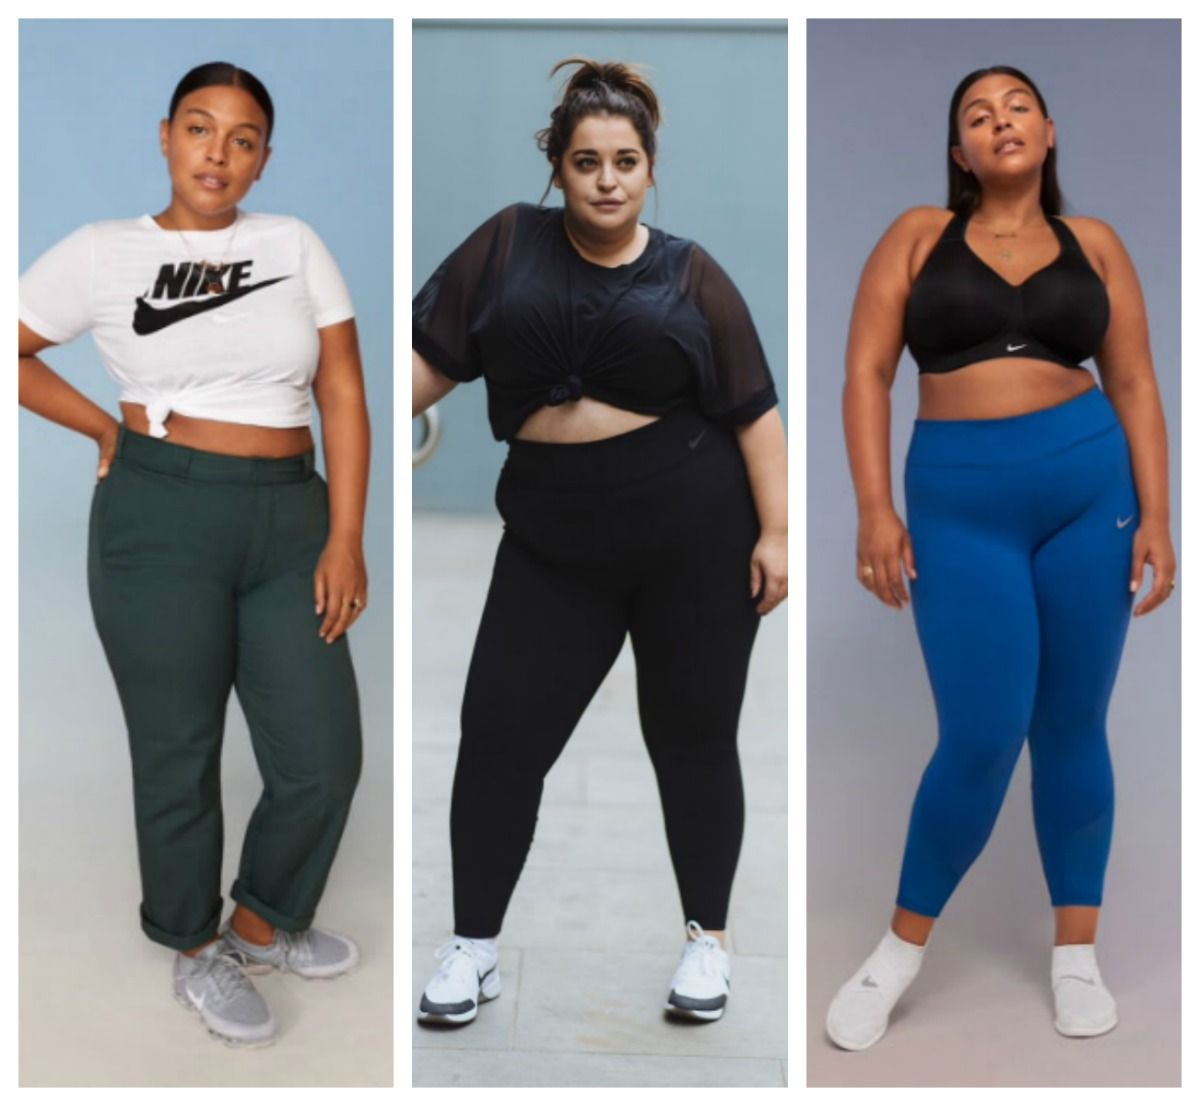 97e5a6c543 Nike Just Launched Their First Plus Size Activewear Campaign